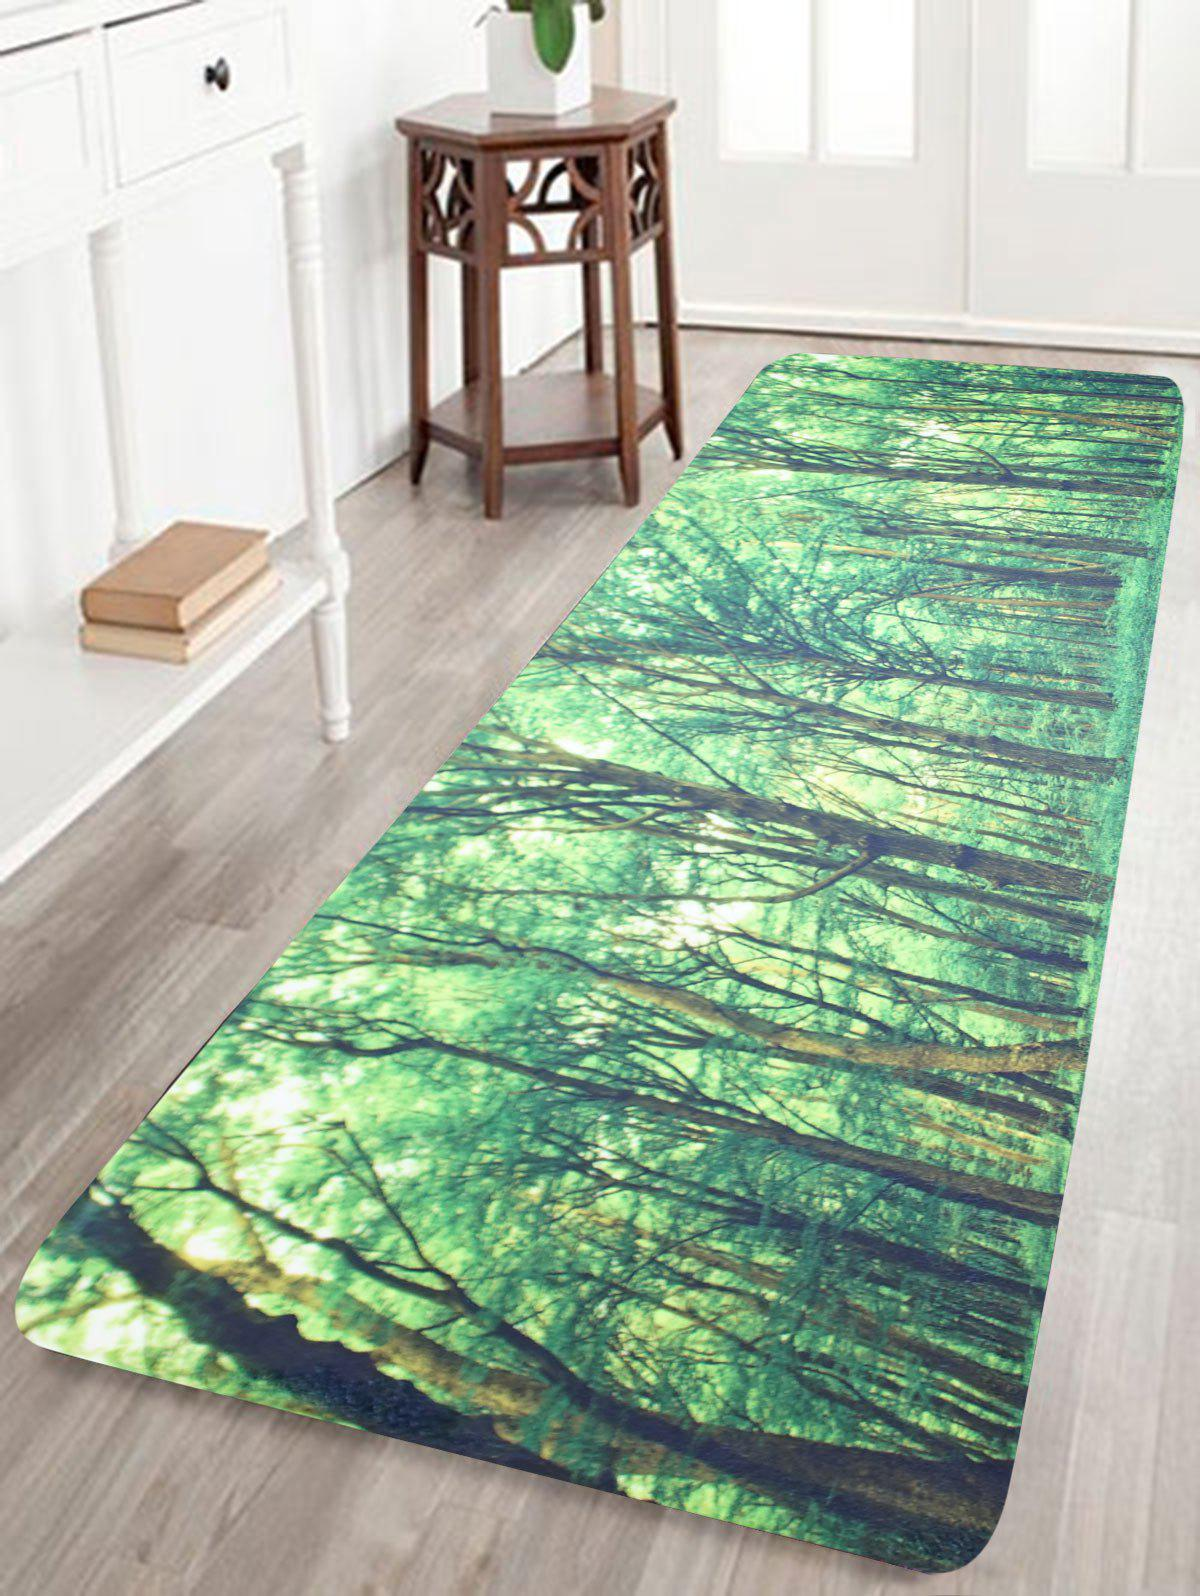 Forest Pattern Coral Fleece Bath Area Rug подвесной унитаз ifo special 731100100